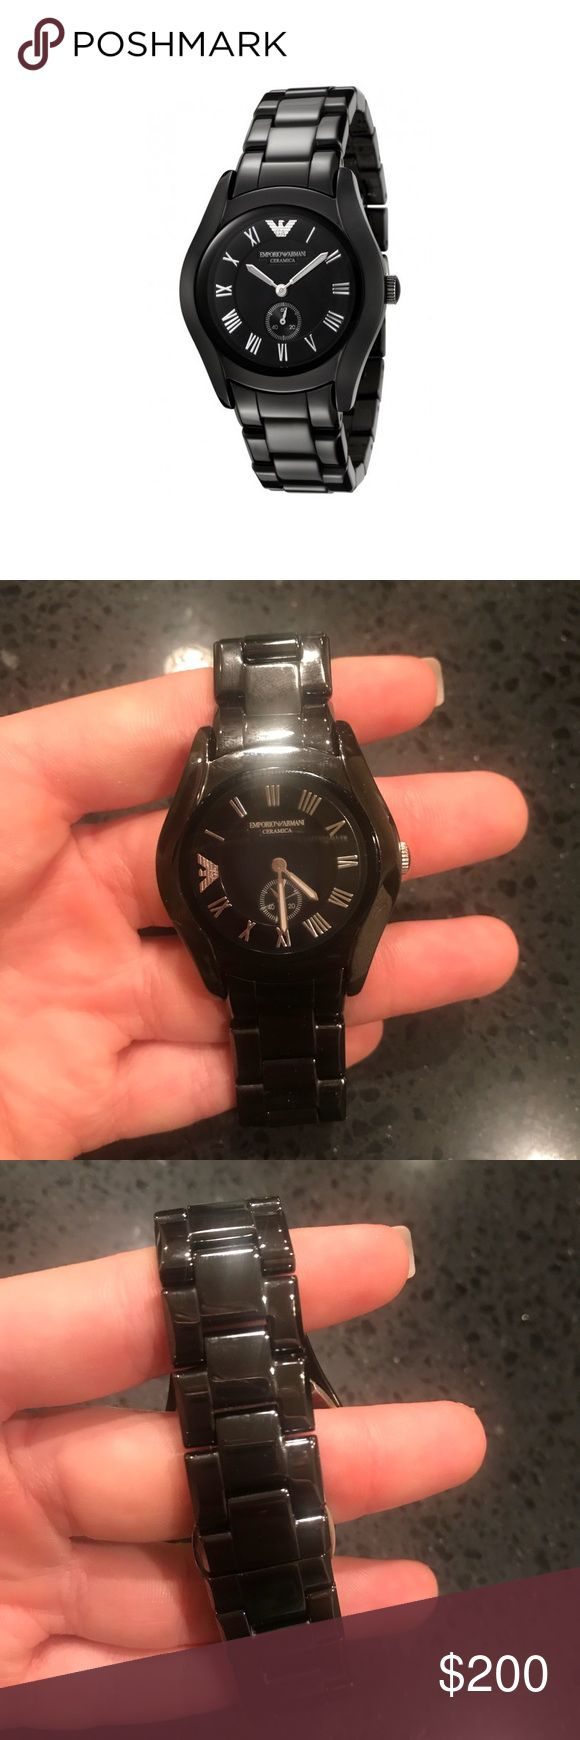 Armani AR1402 black ceramic watch NWT Armani AR1402 black ceramic watch NWT. This watch is in fantastic condition! The tags are still attached. The battery is dead and needs replaced (extremely cheap and easy to do) this does not come with the Armani watch box Emporio Armani Accessories Watches